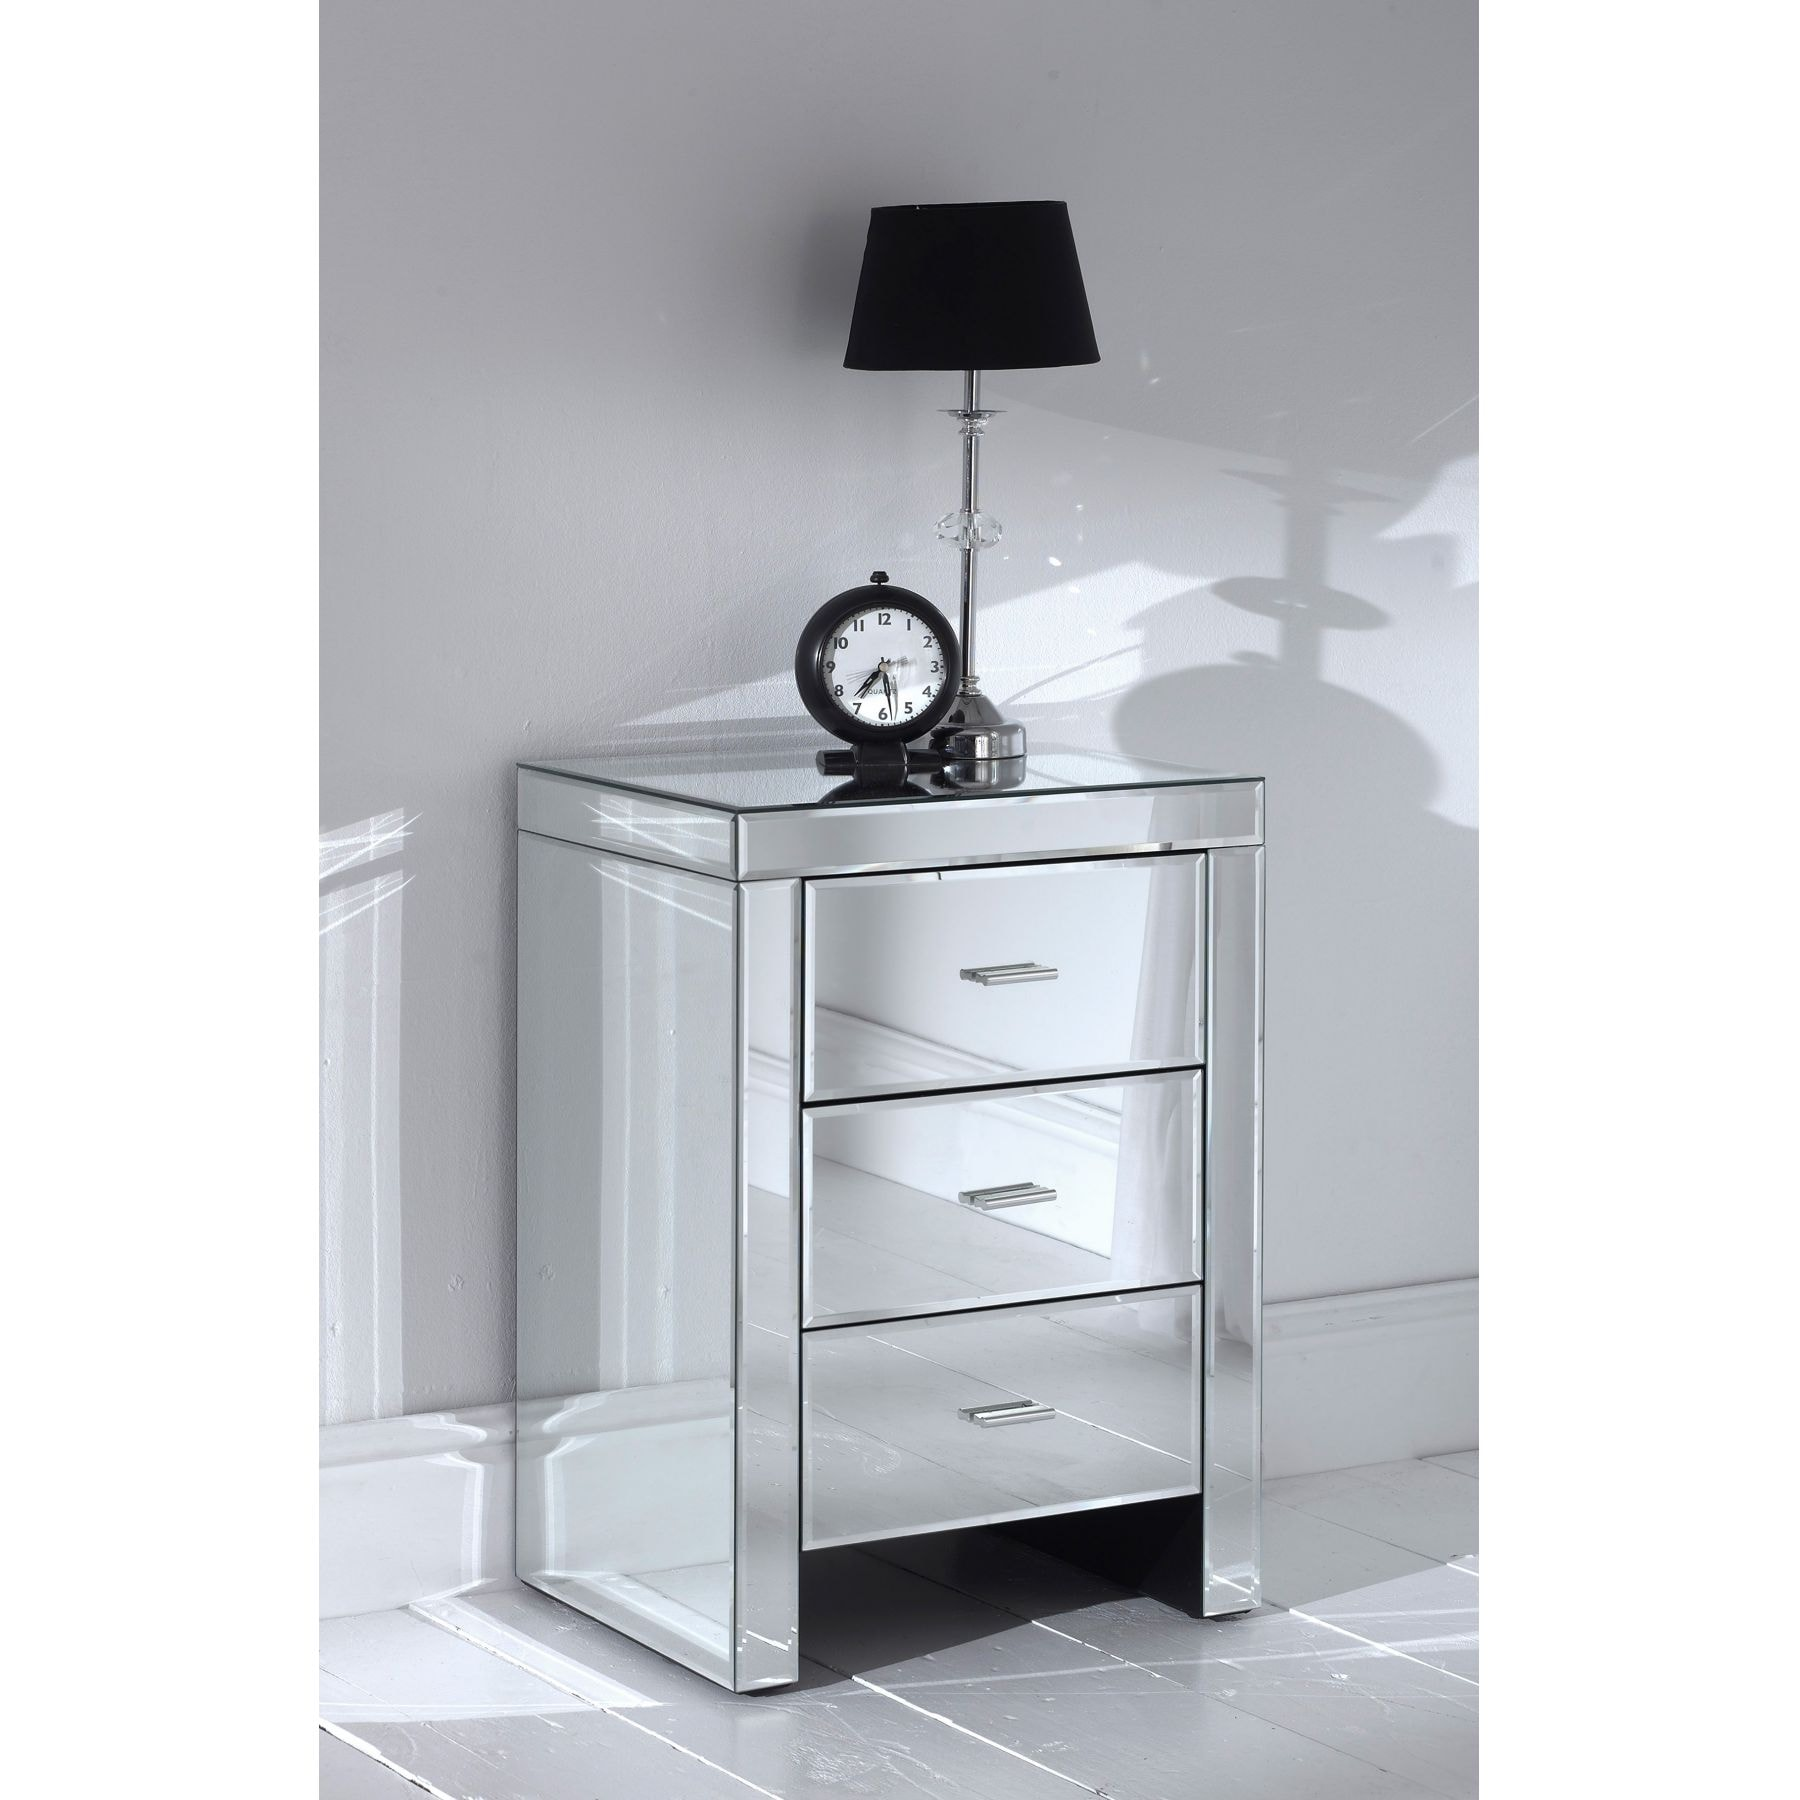 Mirrored Bedroom Furniture Uk Romano Mirrored Bundle Deal 1 French Furniture From Homesdirect